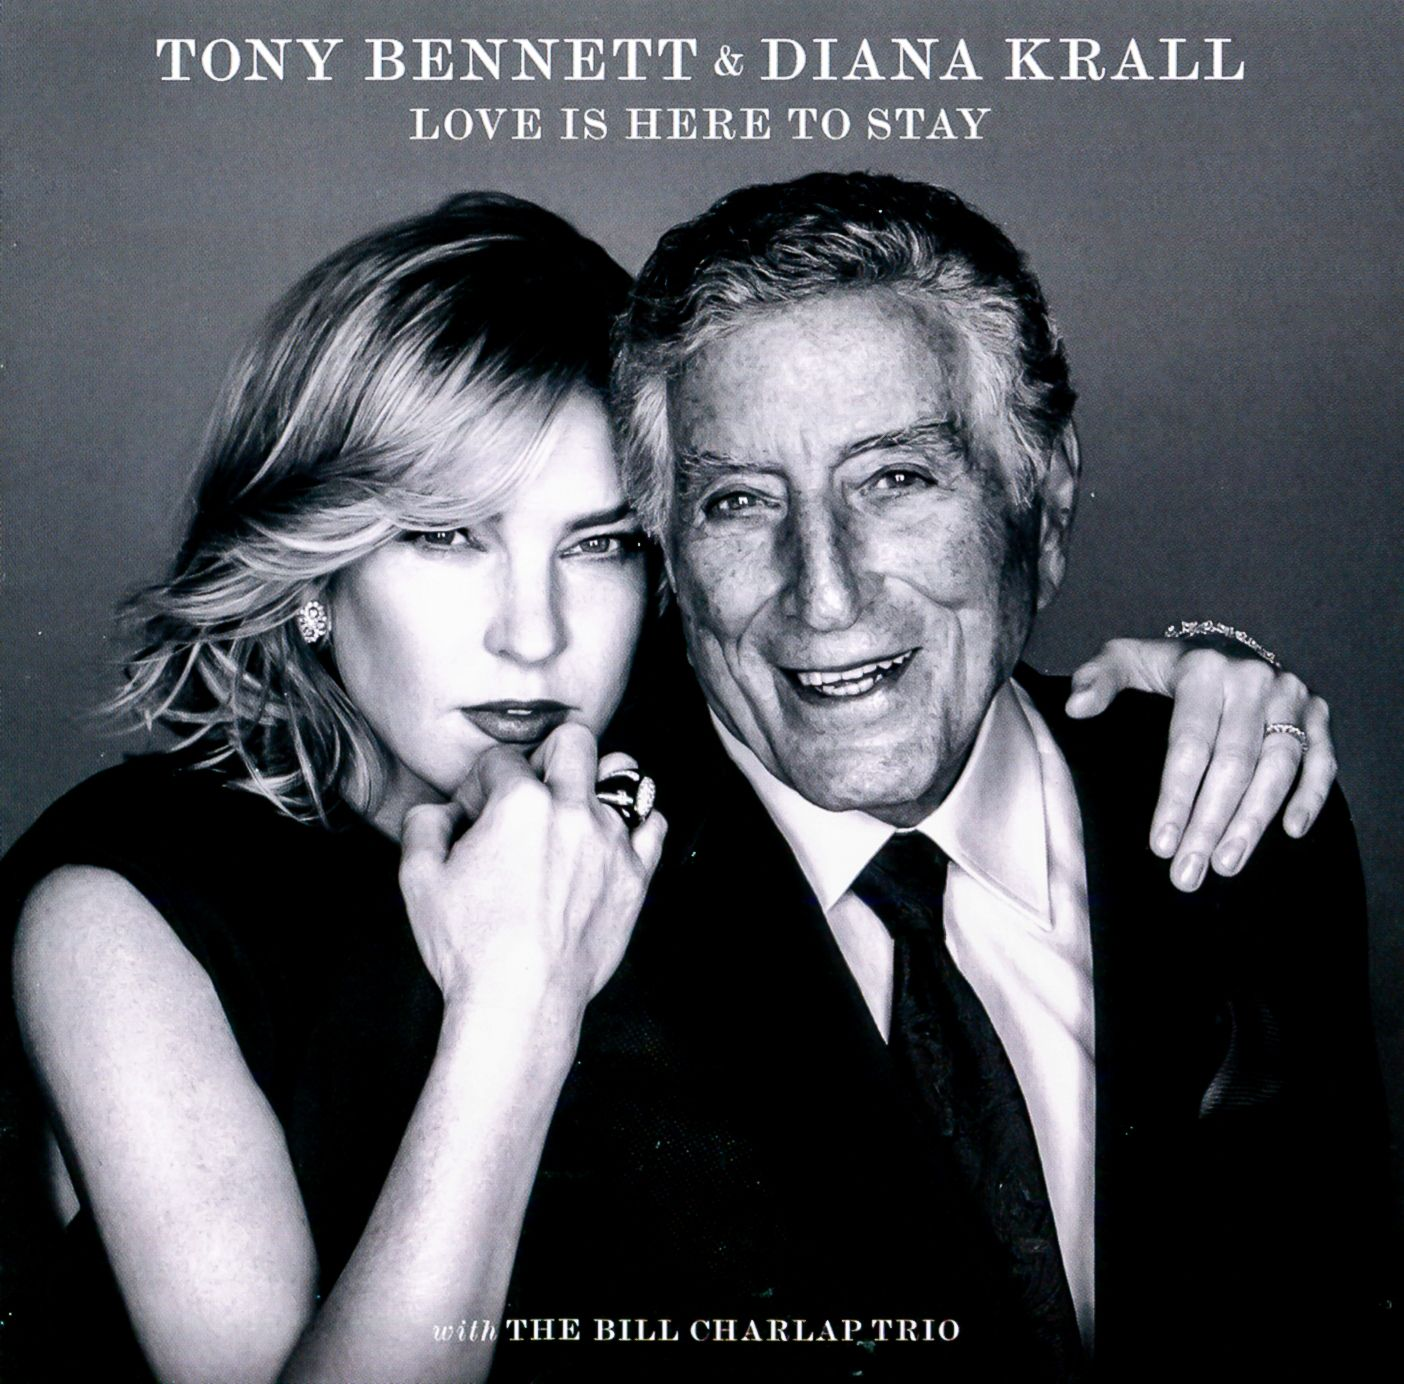 Tony Bennett - Love Is Here To Stay album cover